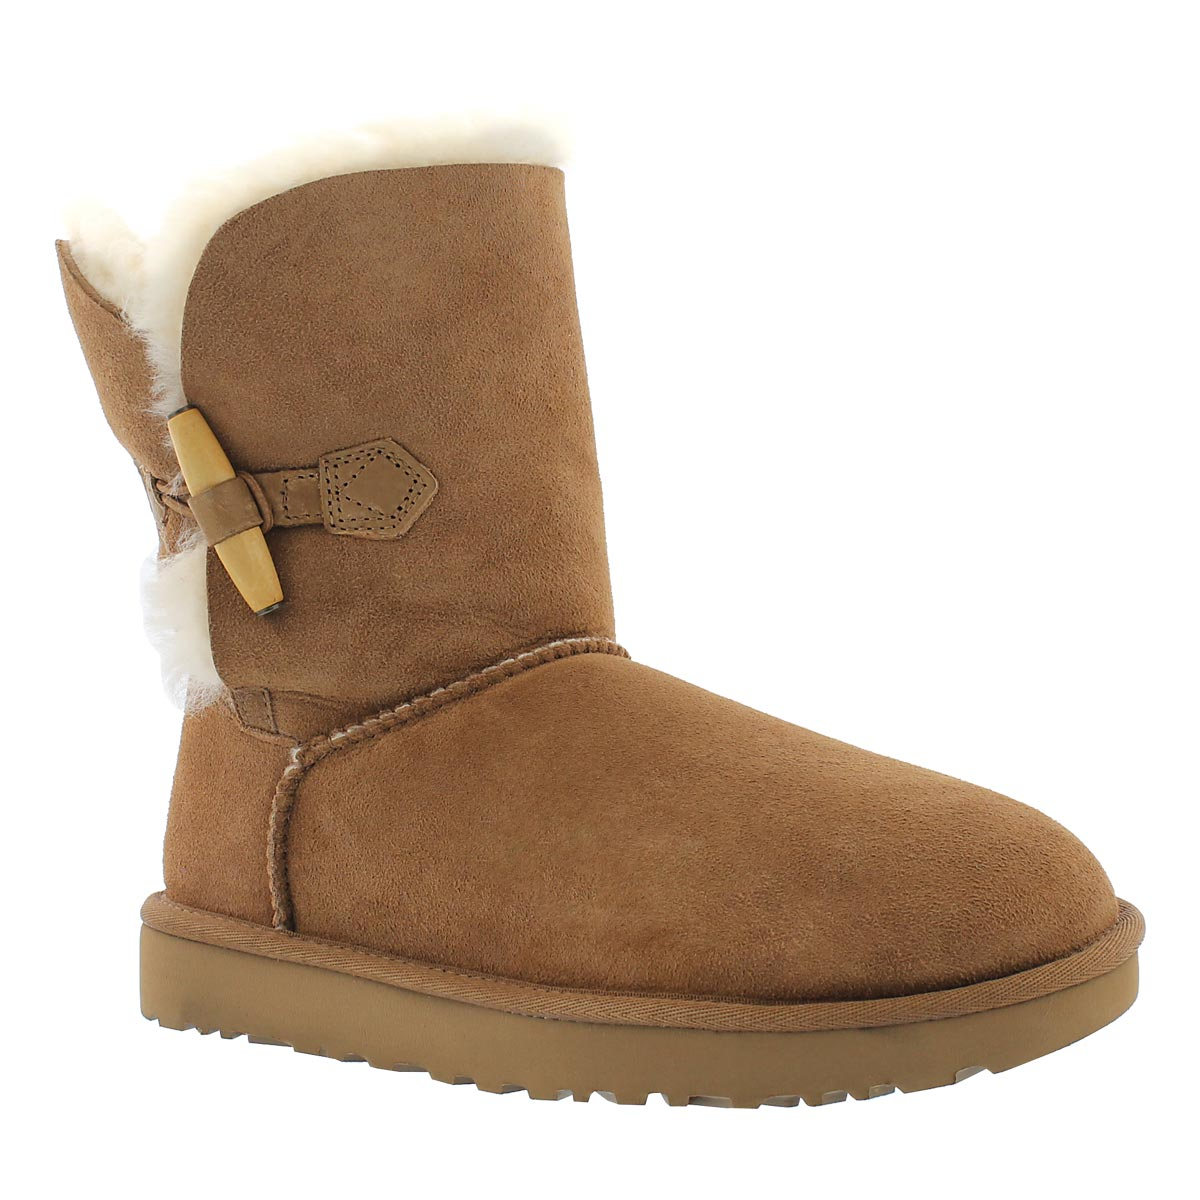 Lds Keely ches sheepskin toggle boot